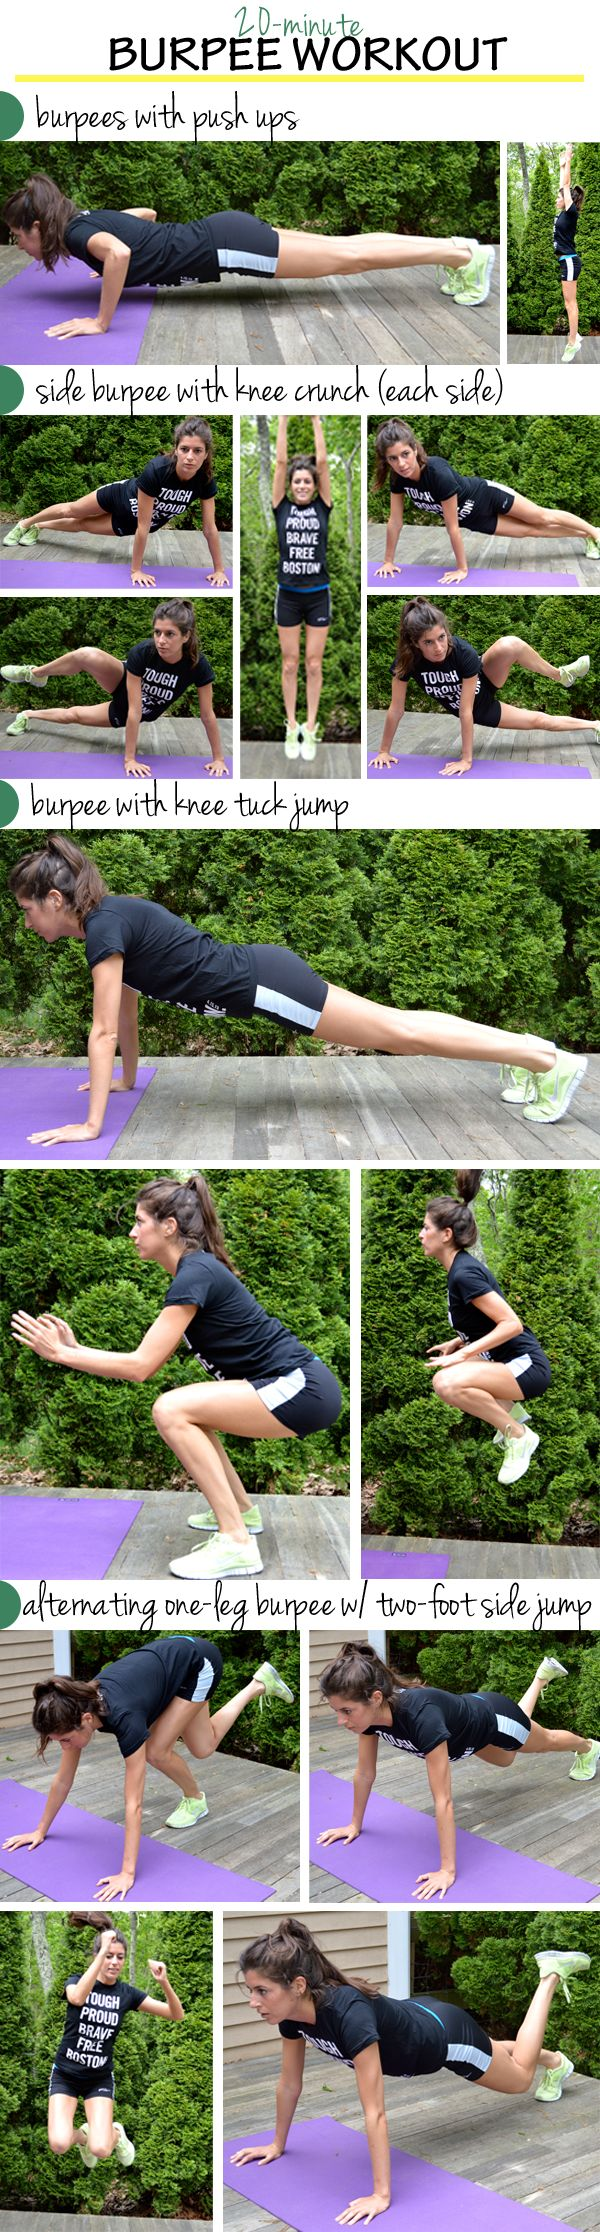 12 (Sweaty) Burpee Workouts like this 20 minute circuit workout from Pumps and Iron. #FitFluential